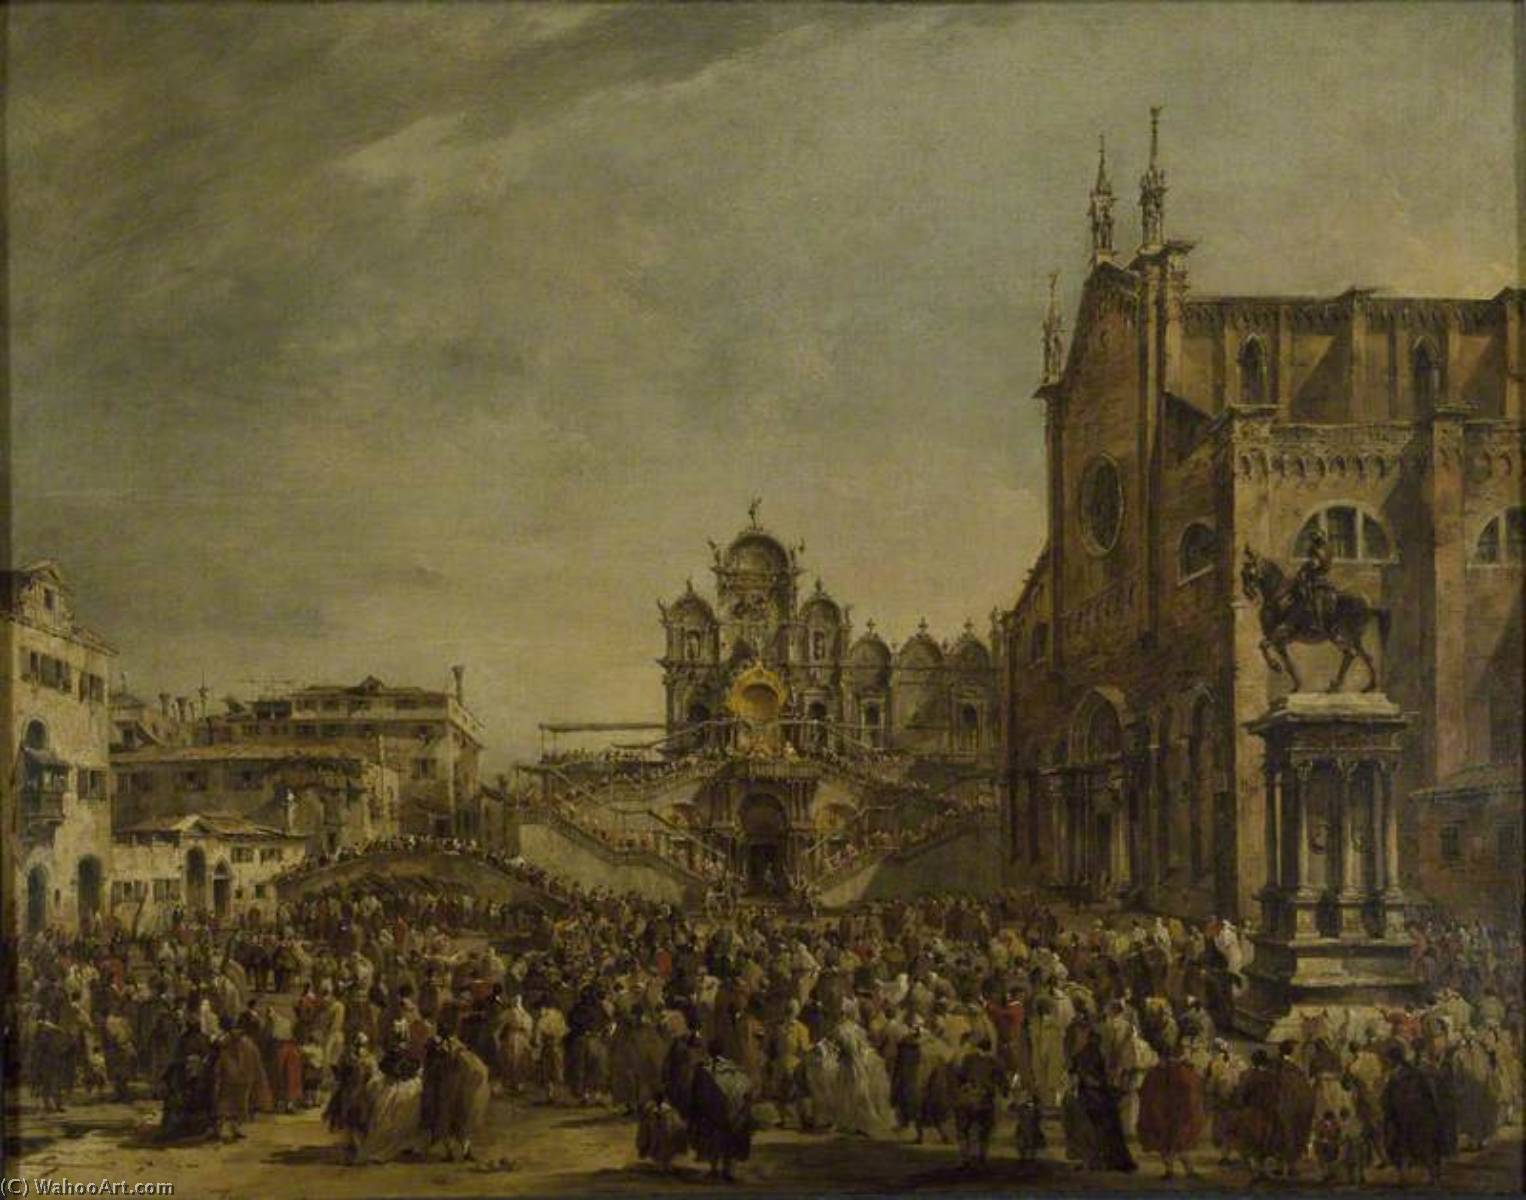 Pope Pius VI blessing the Crowd at Campo SS Giovanni e Paolo, Venice, Oil On Canvas by Francesco Lazzaro Guardi (1712-1793, Italy)